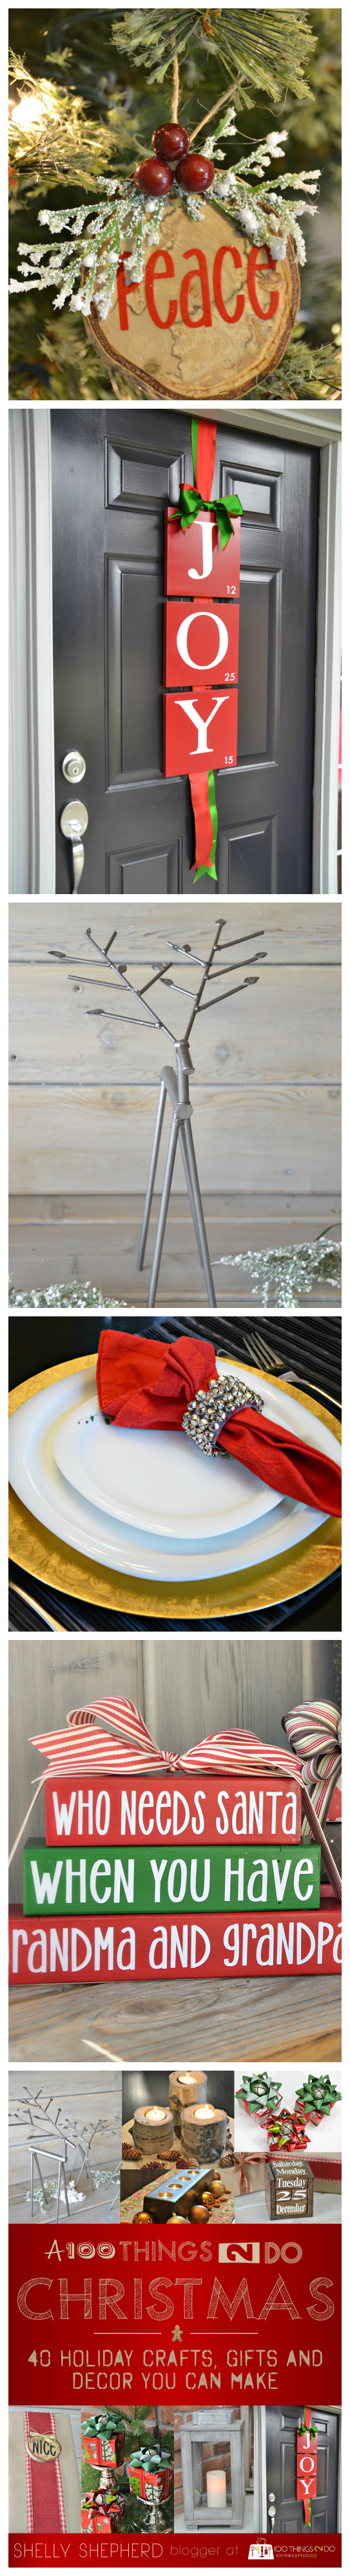 40+ Christmas crafts, gifts and decor you can make!